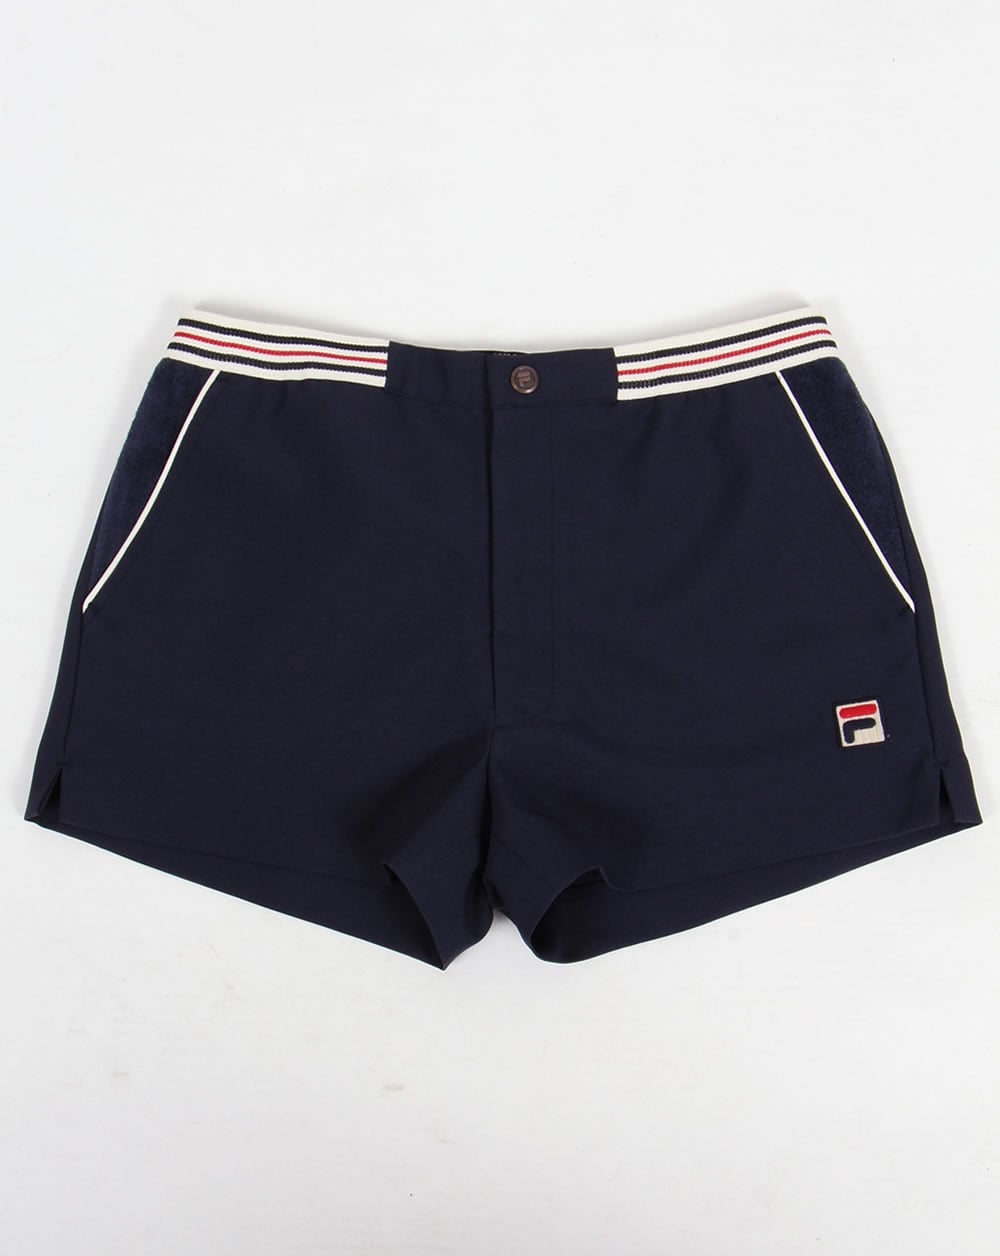 48e04cfc2ff3 Fila Vintage High Tide Shorts Navy striped waistband | 80s casual ...